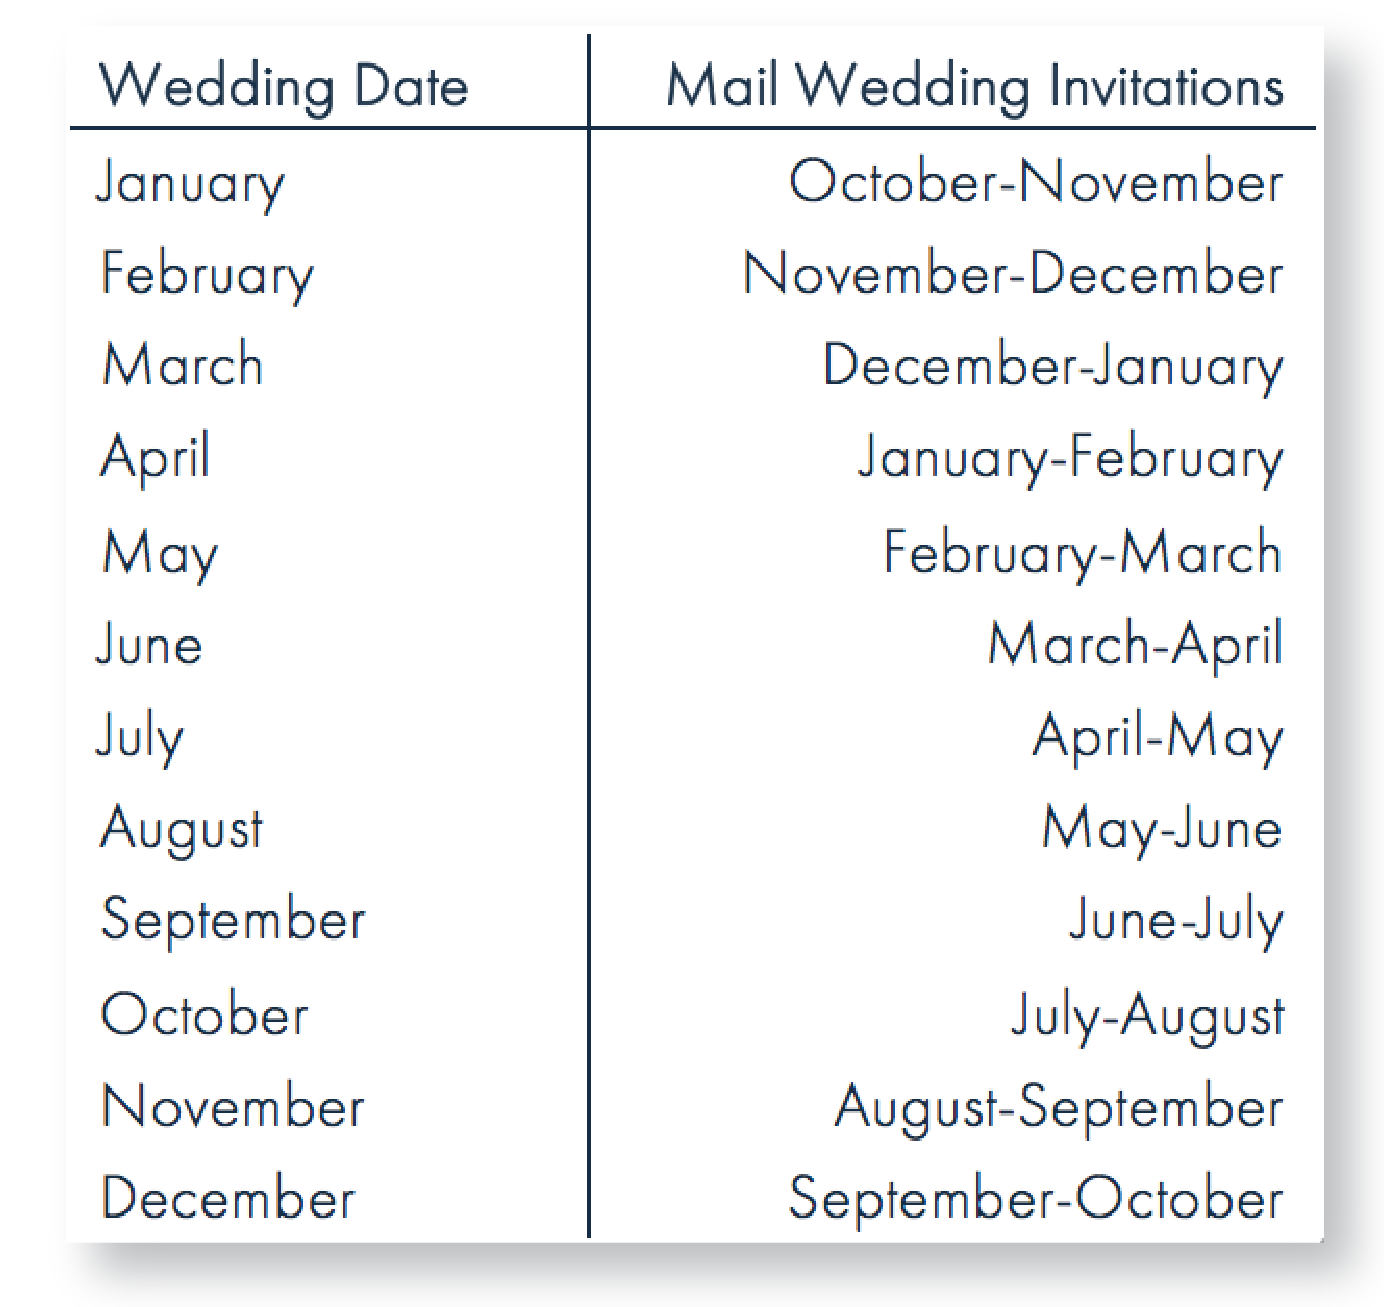 Mail-Wedding-Invitations-06.png